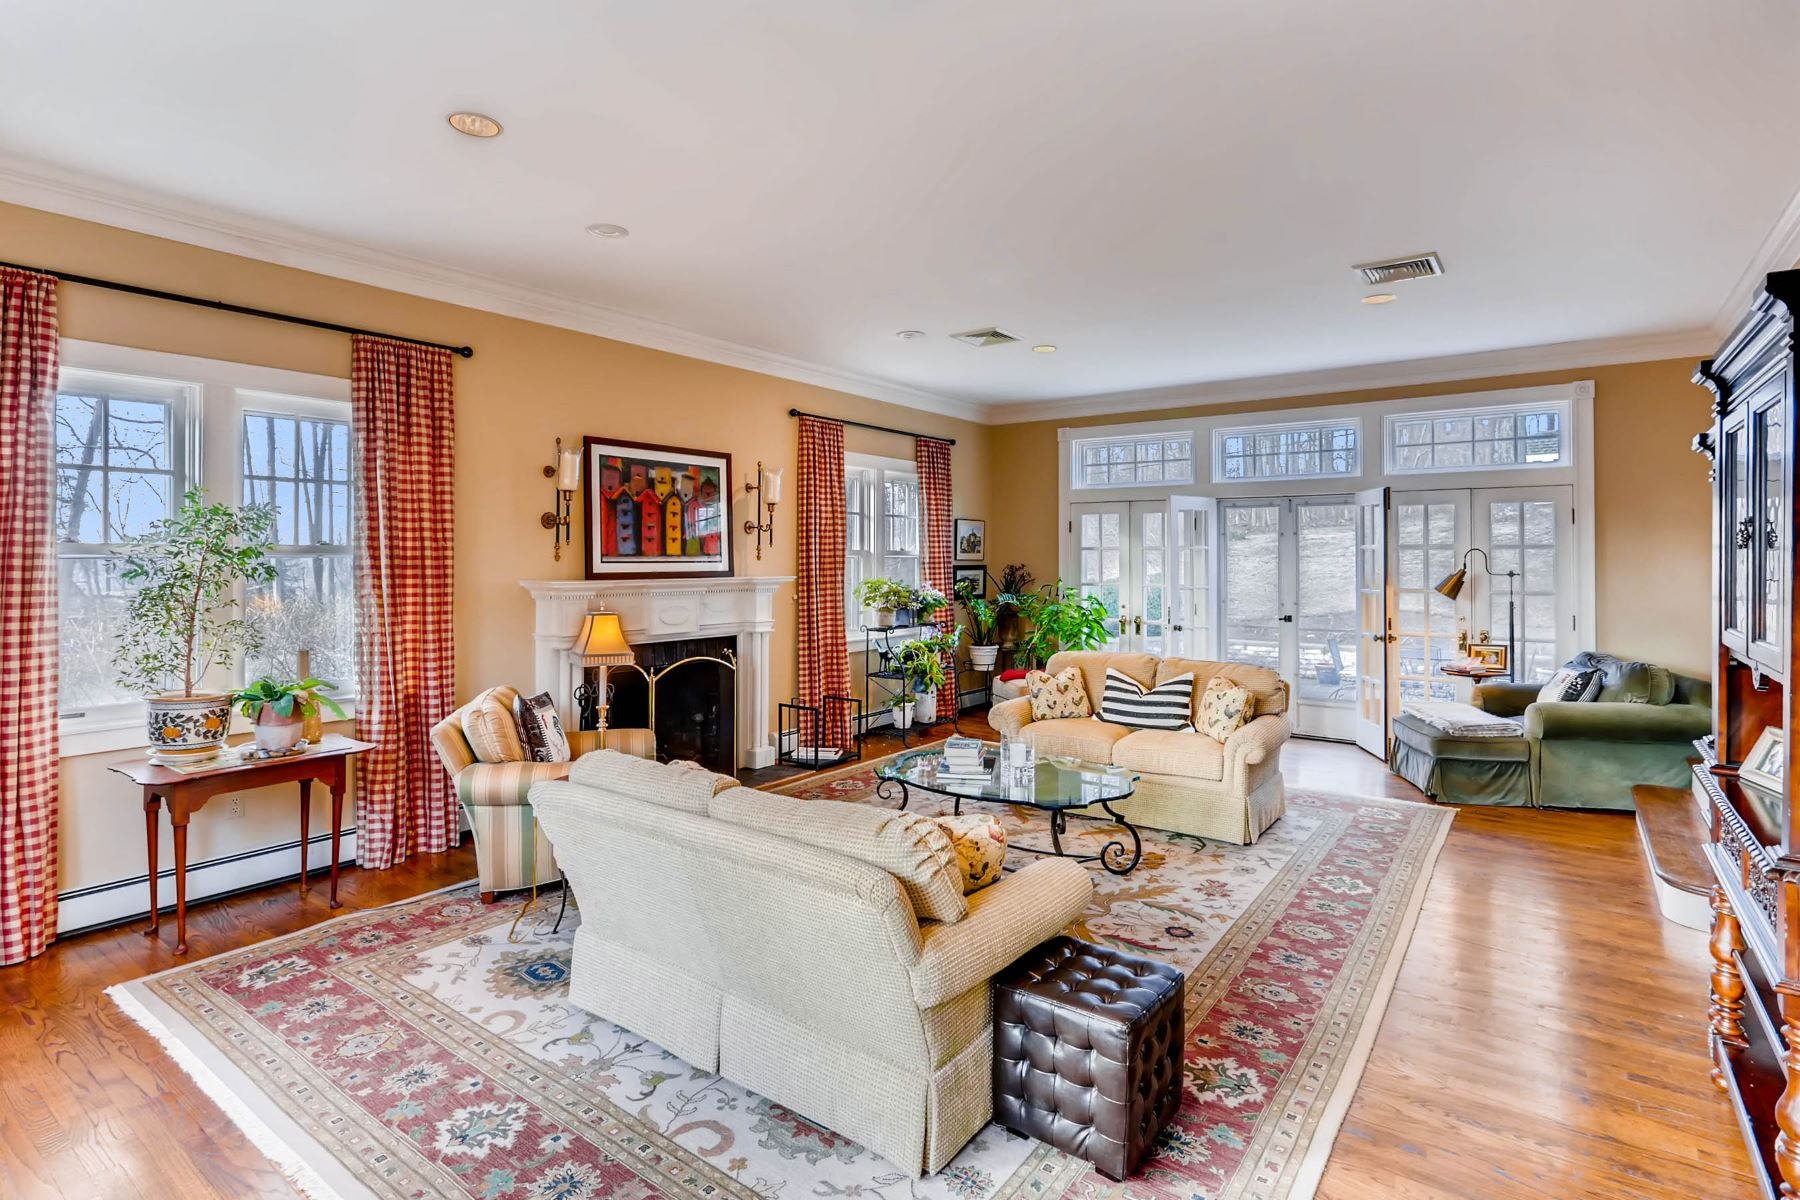 Single Family Homes for Active at Greenspring Valley 424 Garrison Forest Road Owings Mills, Maryland 21117 United States